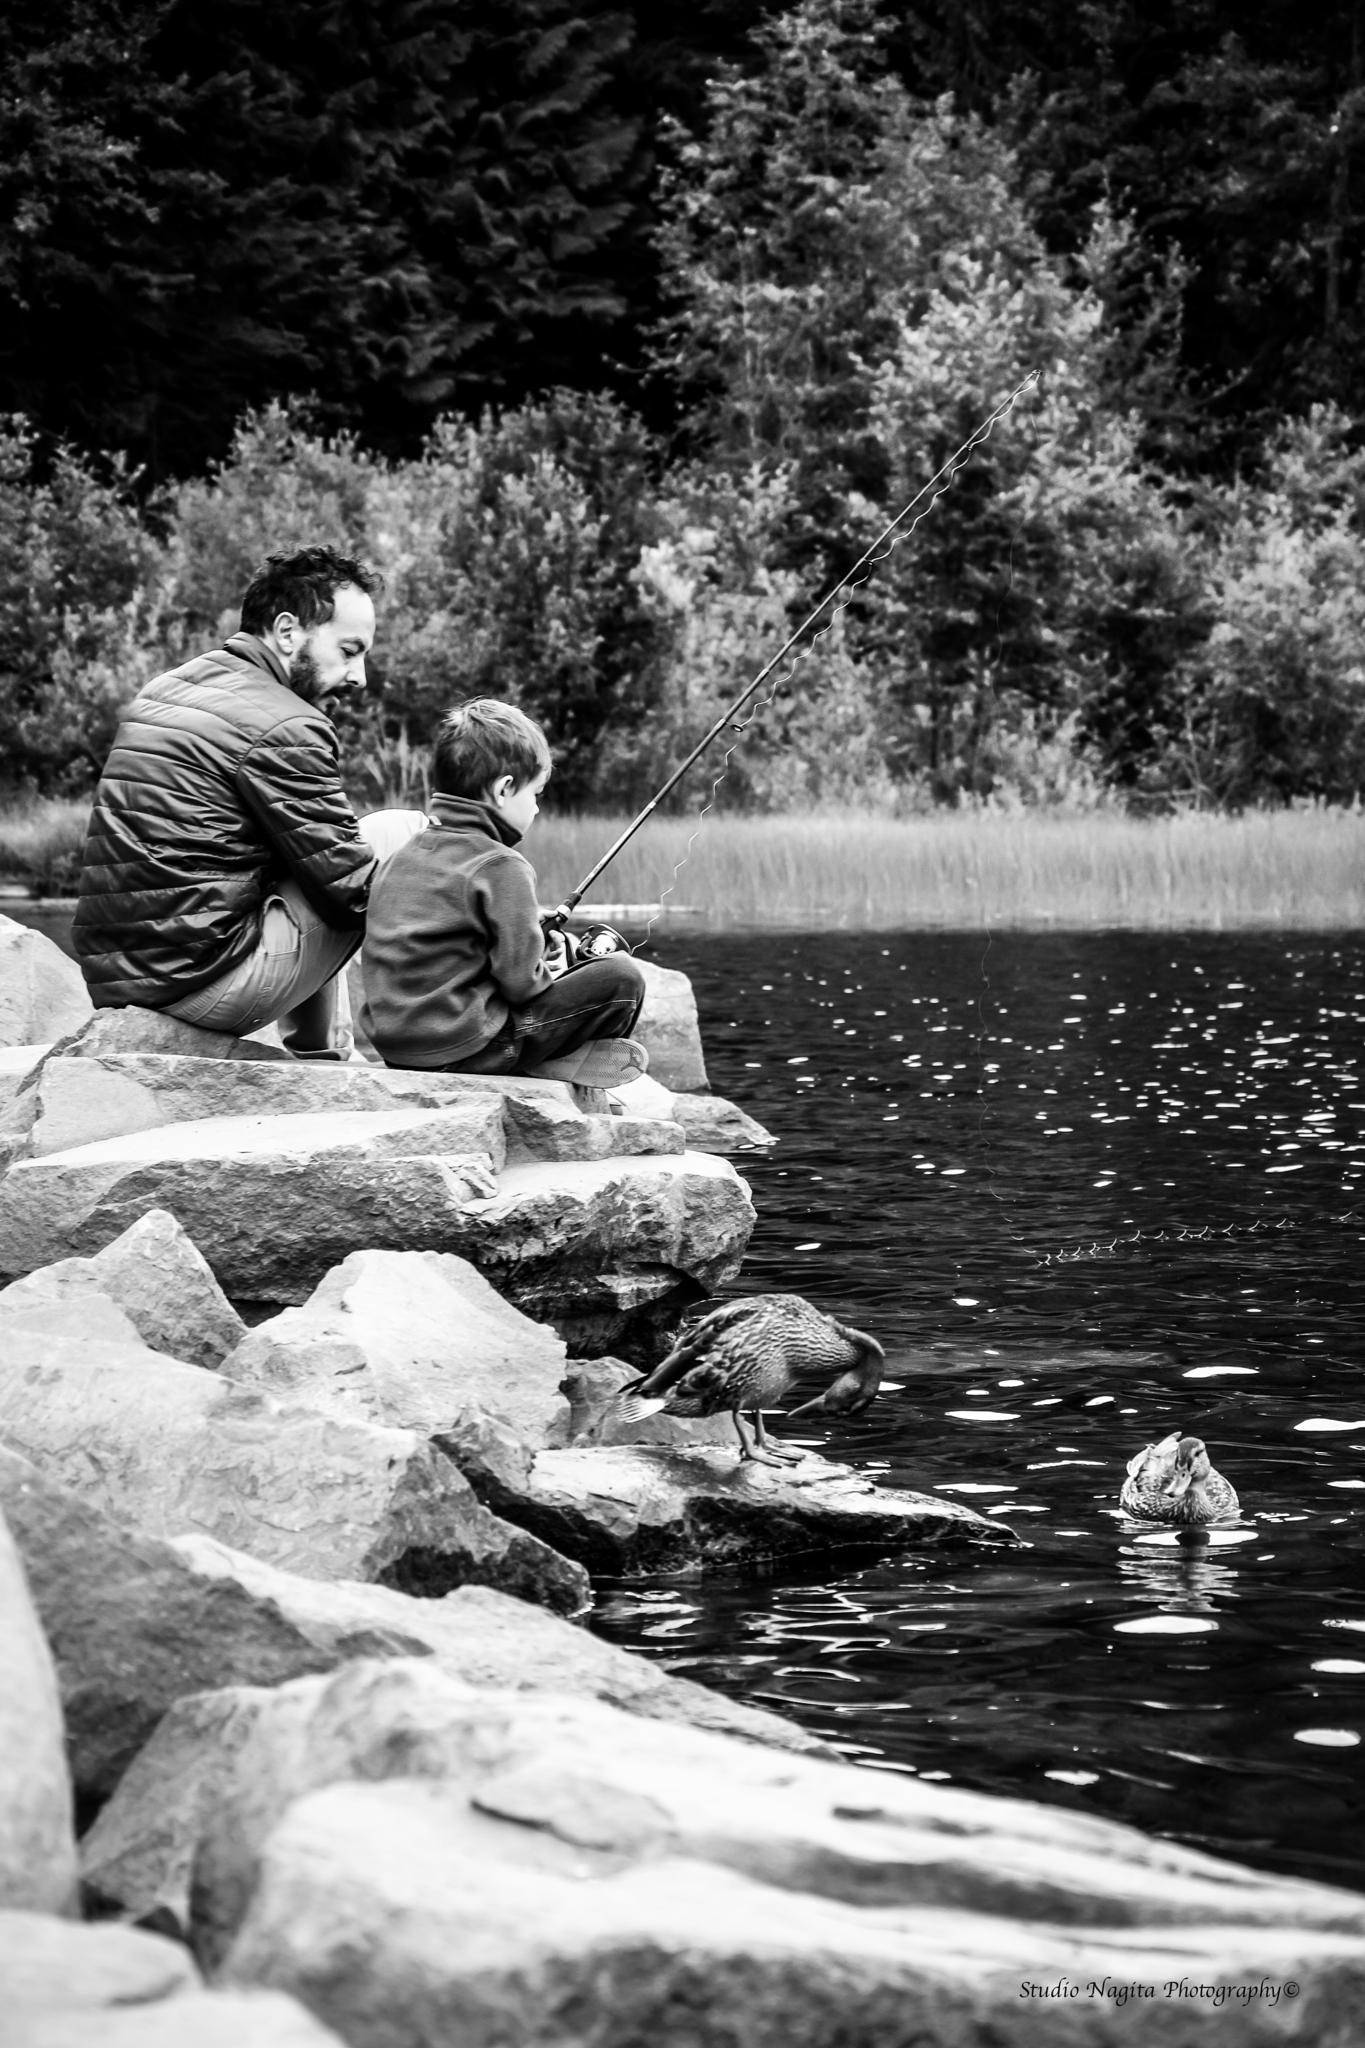 Father and Son moments by Natalie Van Schaik - Smit